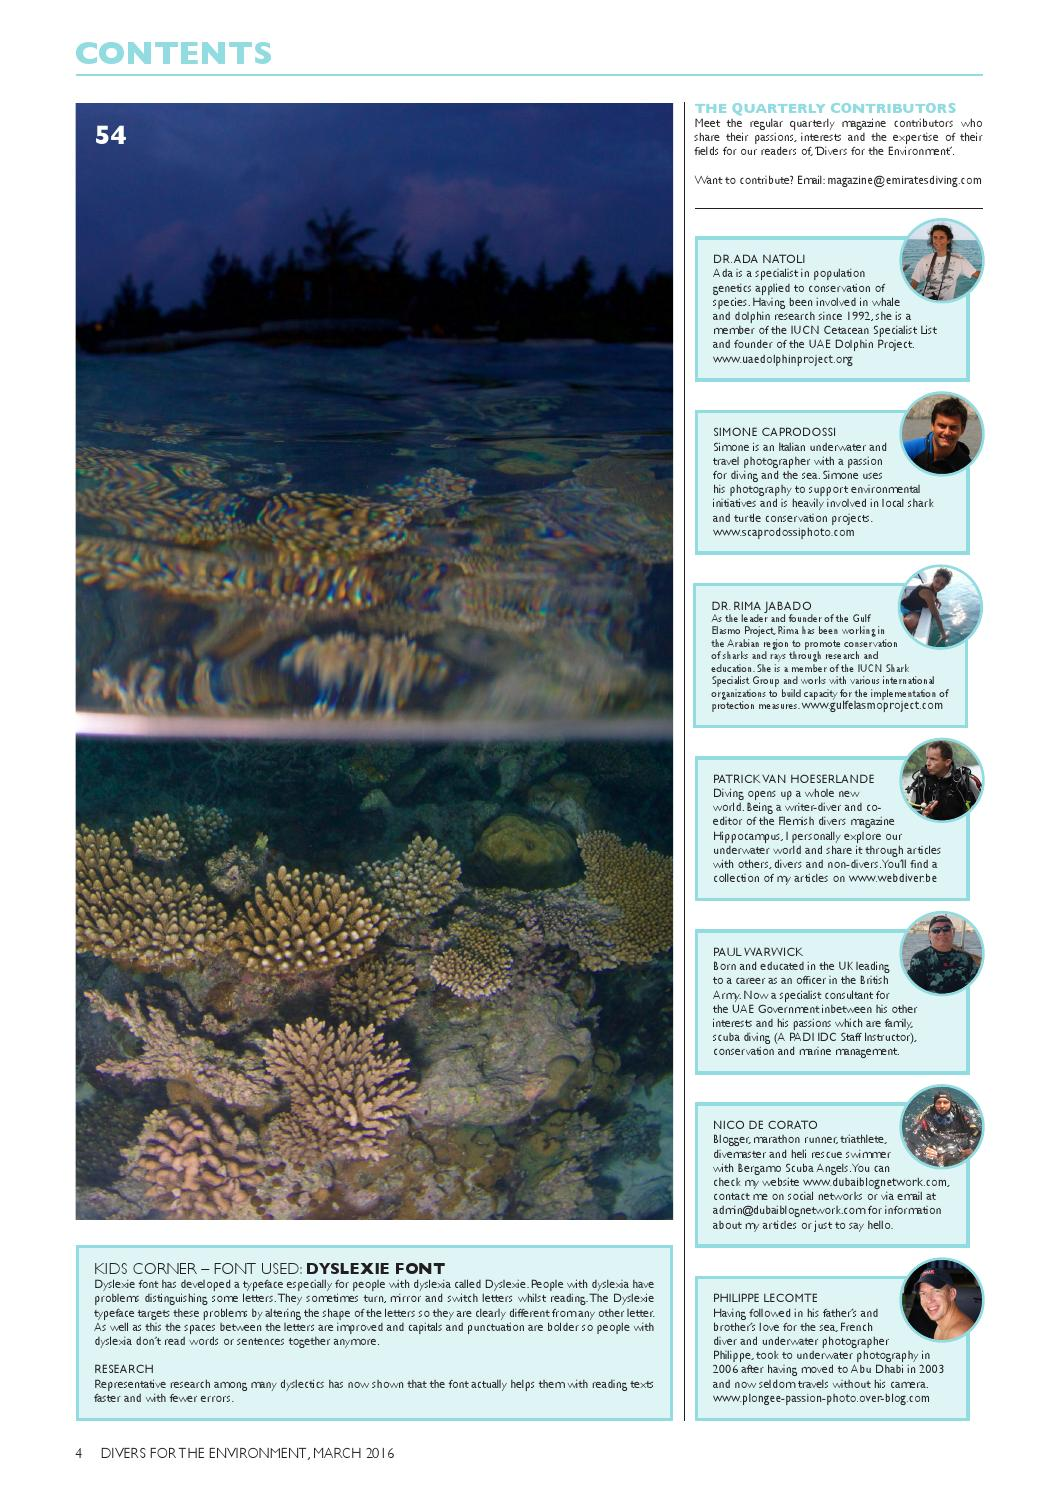 Divers For The Environment March 2016 by Divers for the